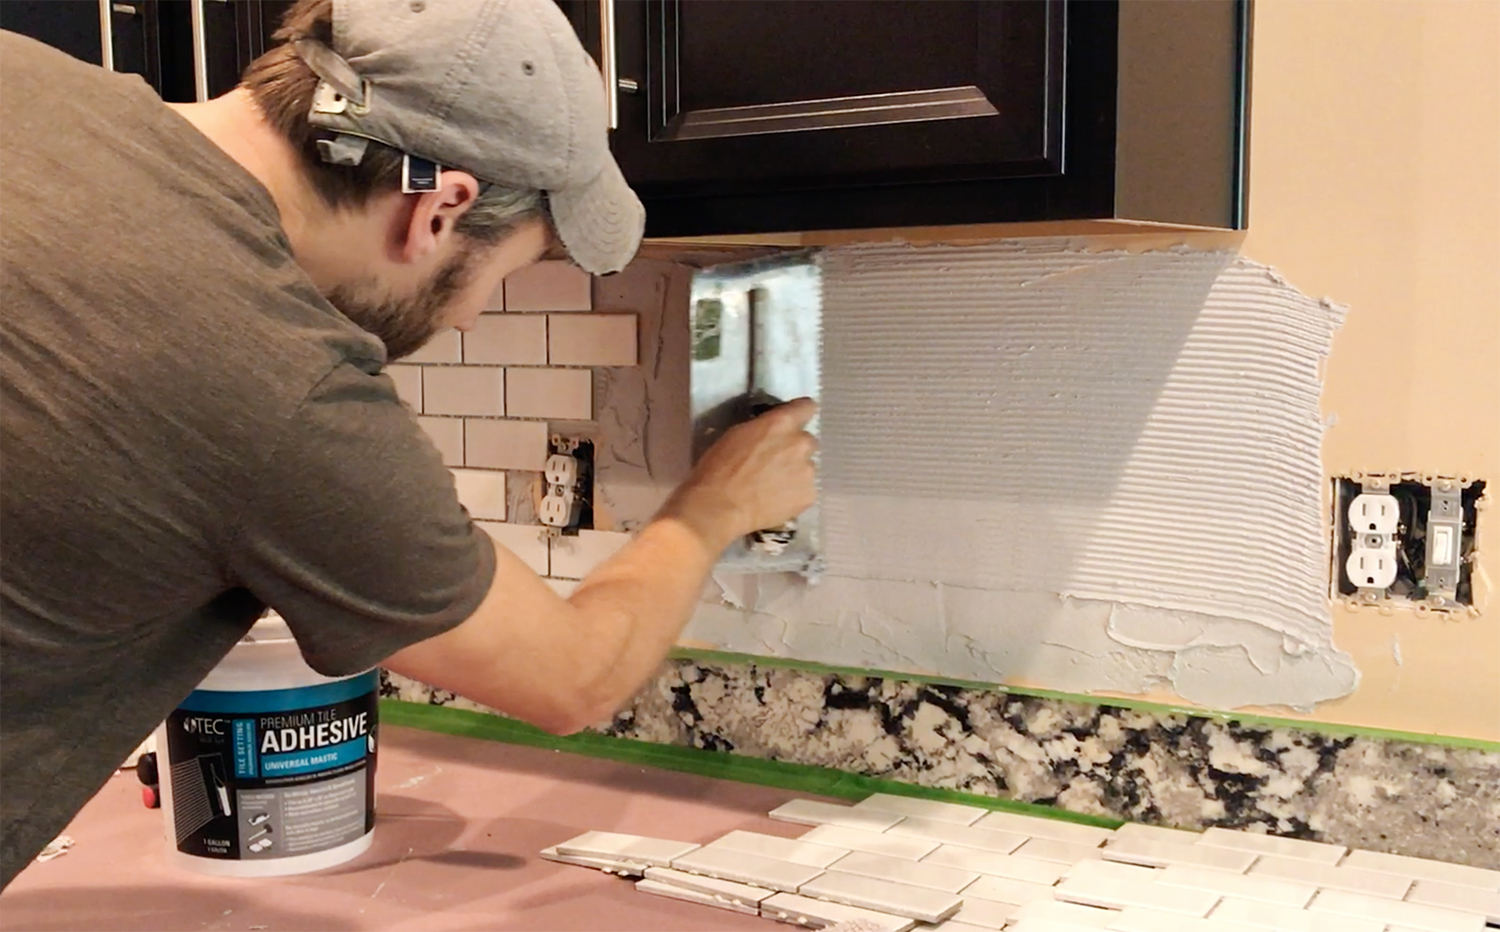 Backsplash-tiling-how-to-prep-install-cut-grout-and-caulk-tile-for-an-awesome-kitchen-back-wallpaper-wp4003226